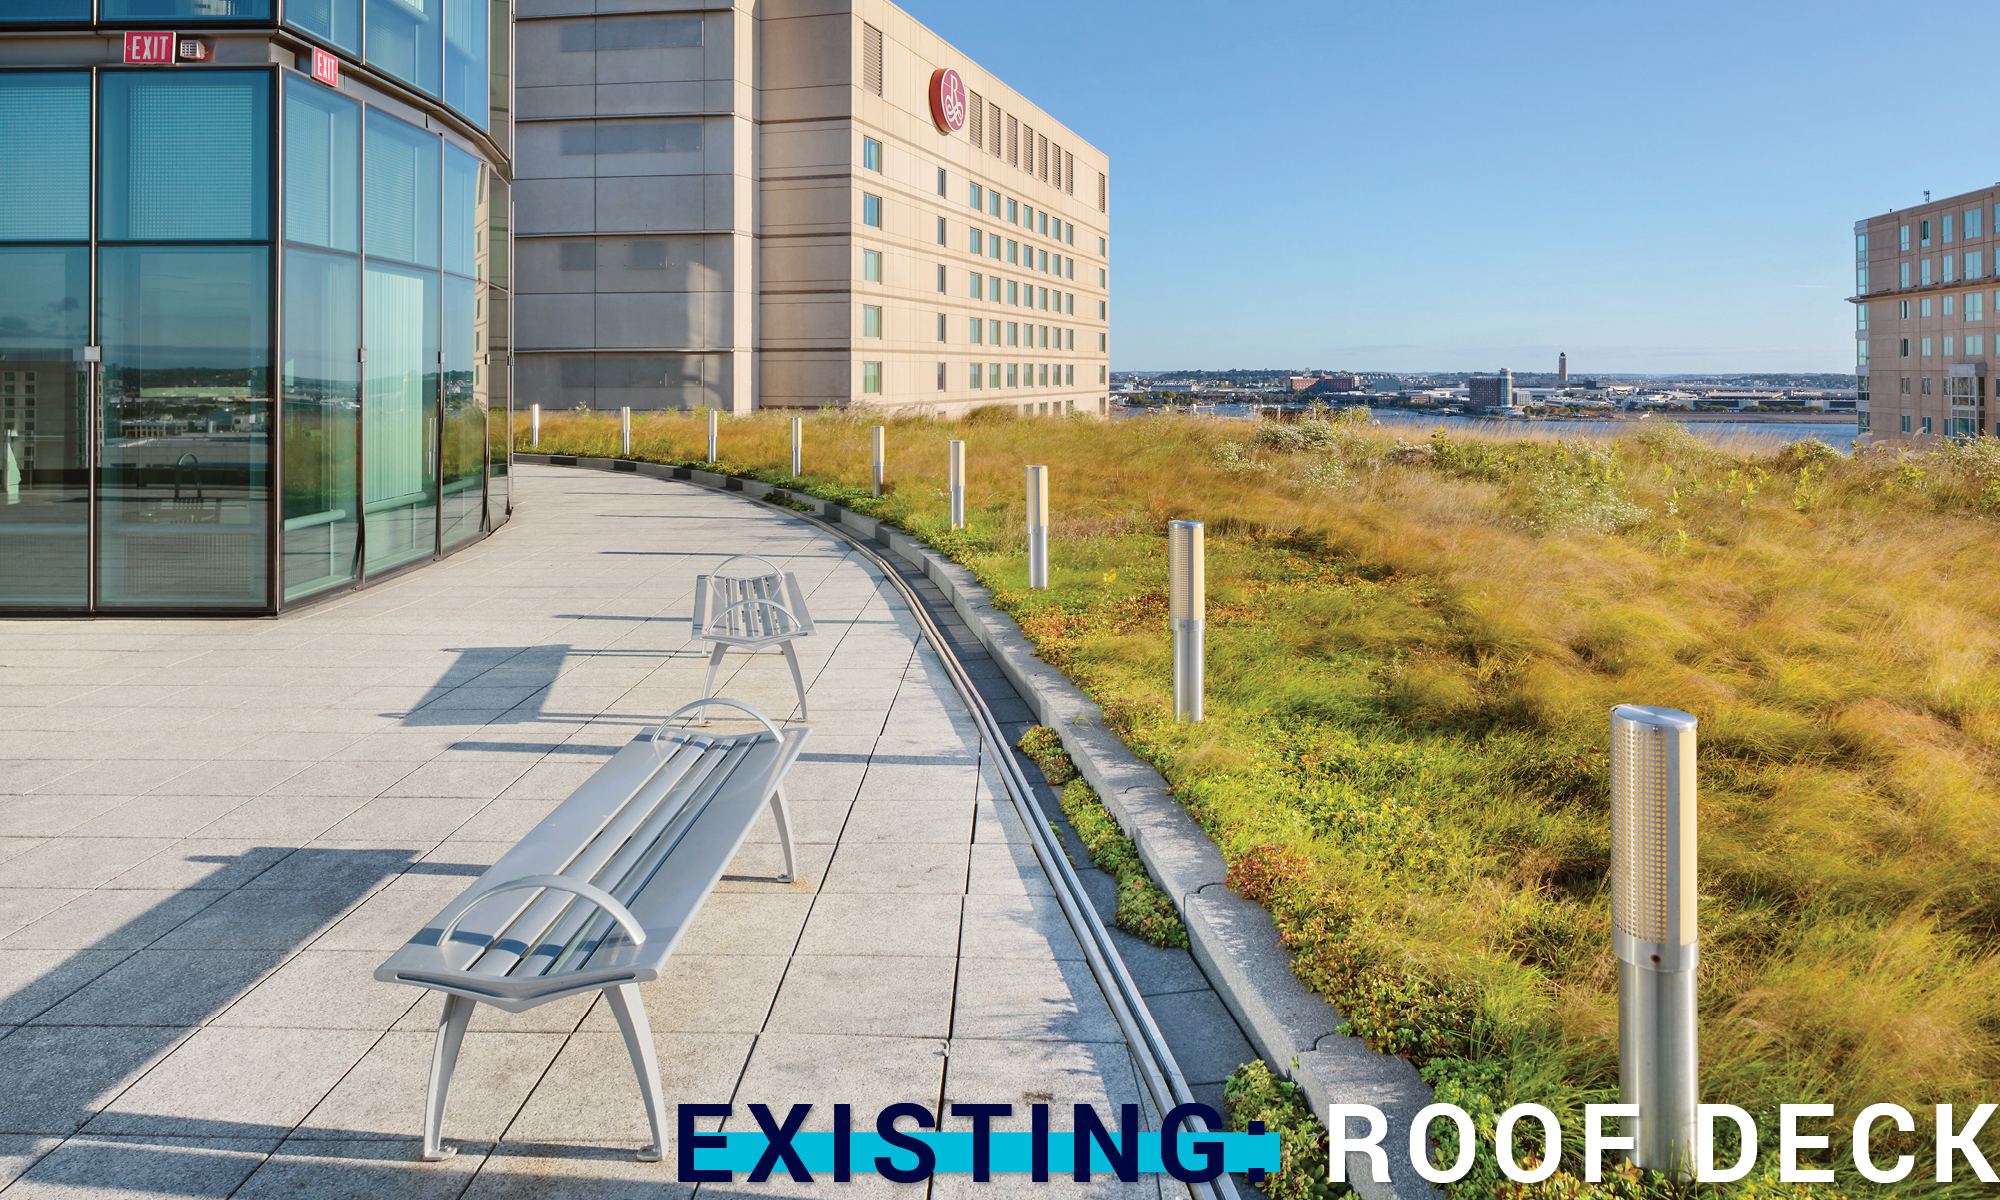 Existing_Roof_Deck